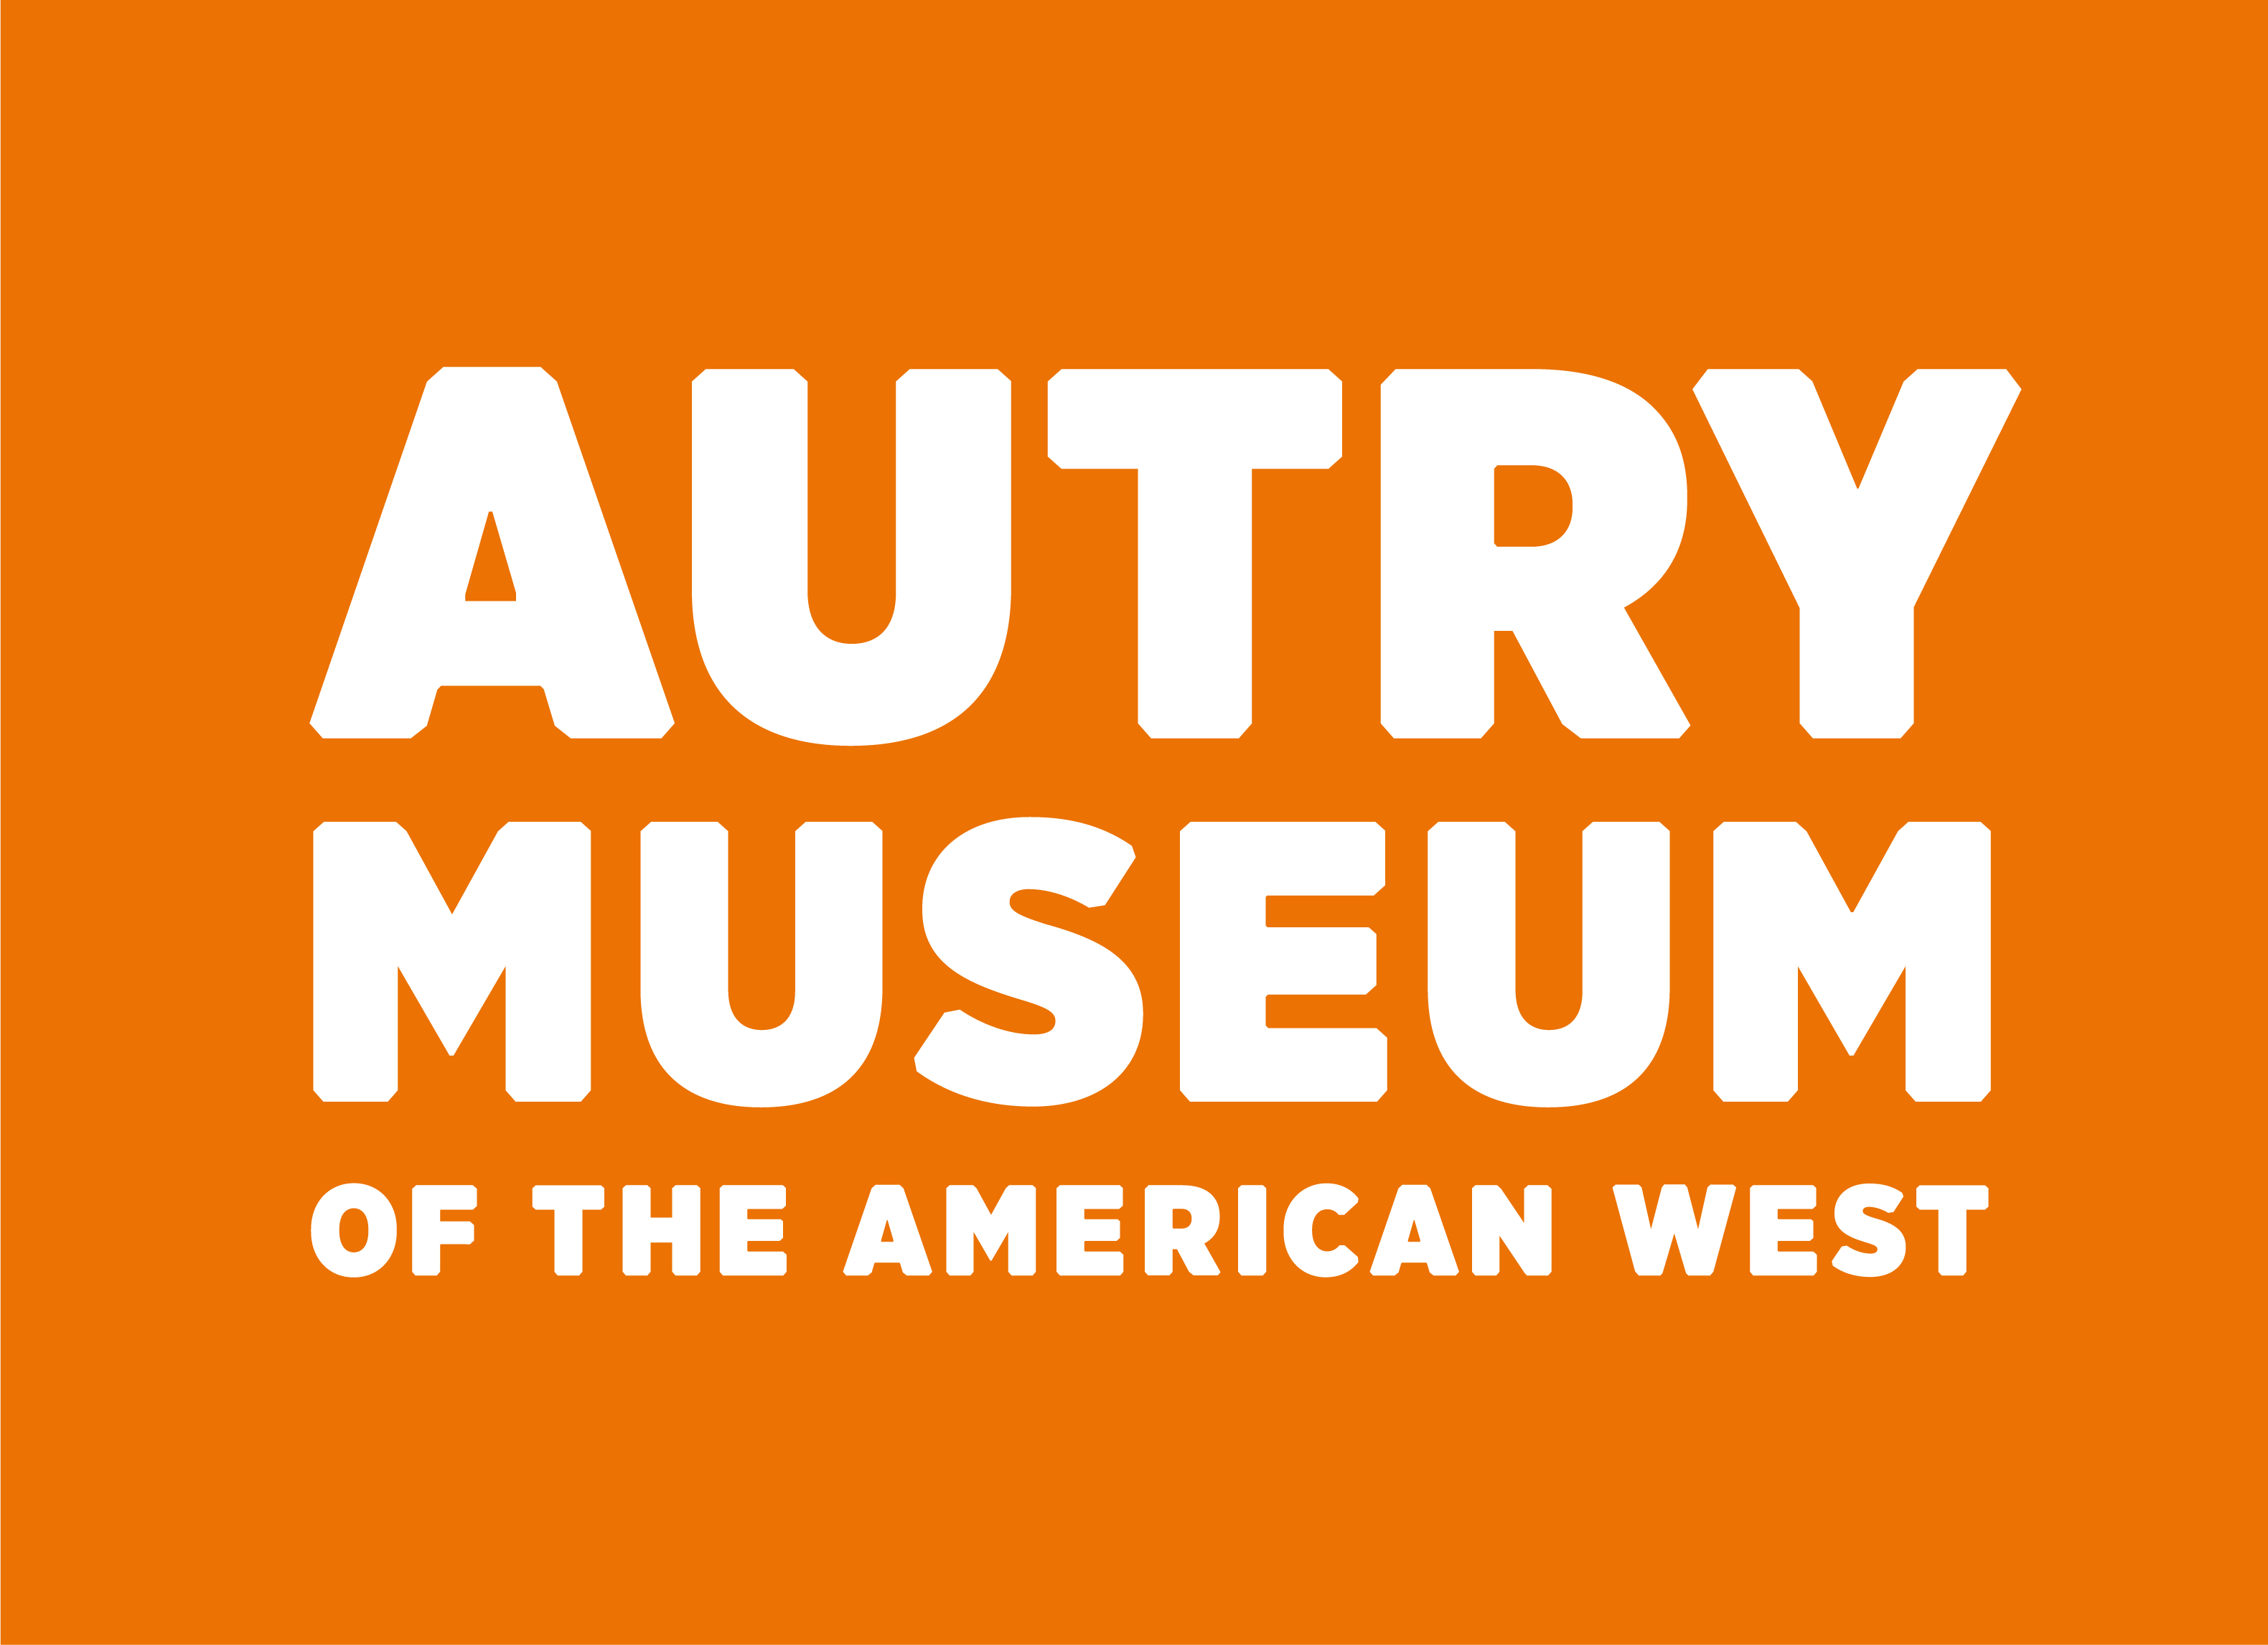 the autry